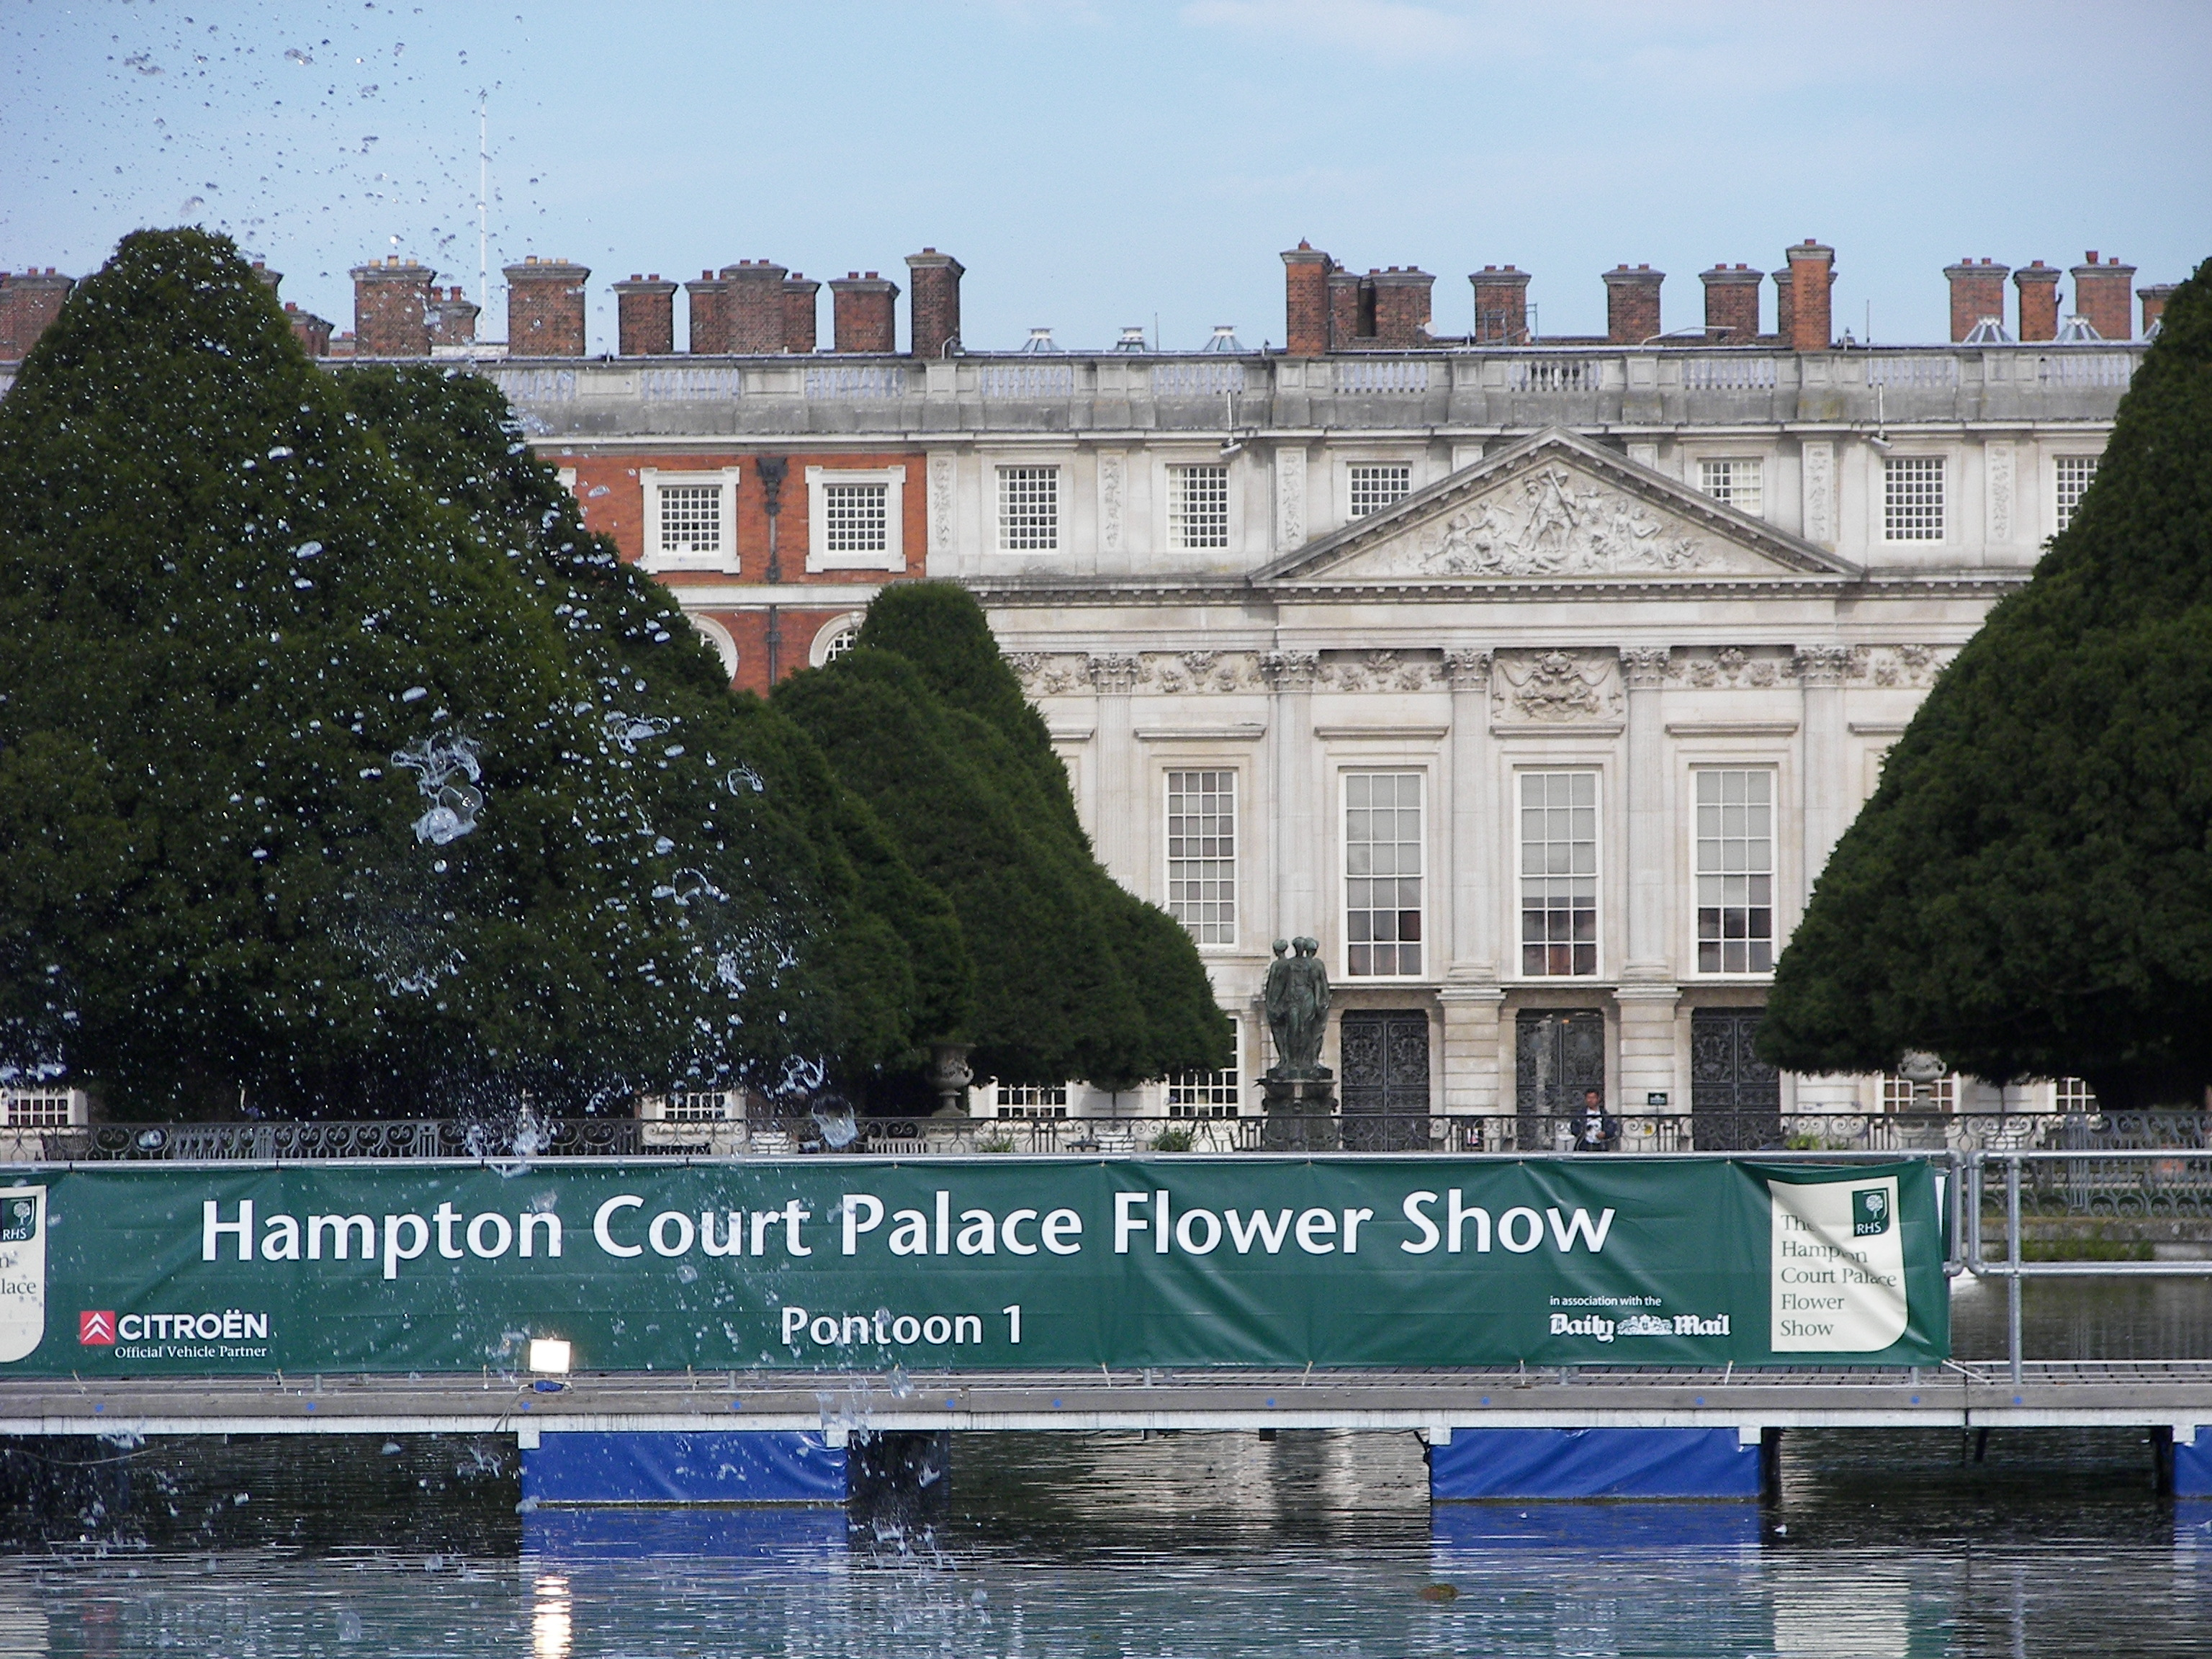 RHS Hampton Court Palace